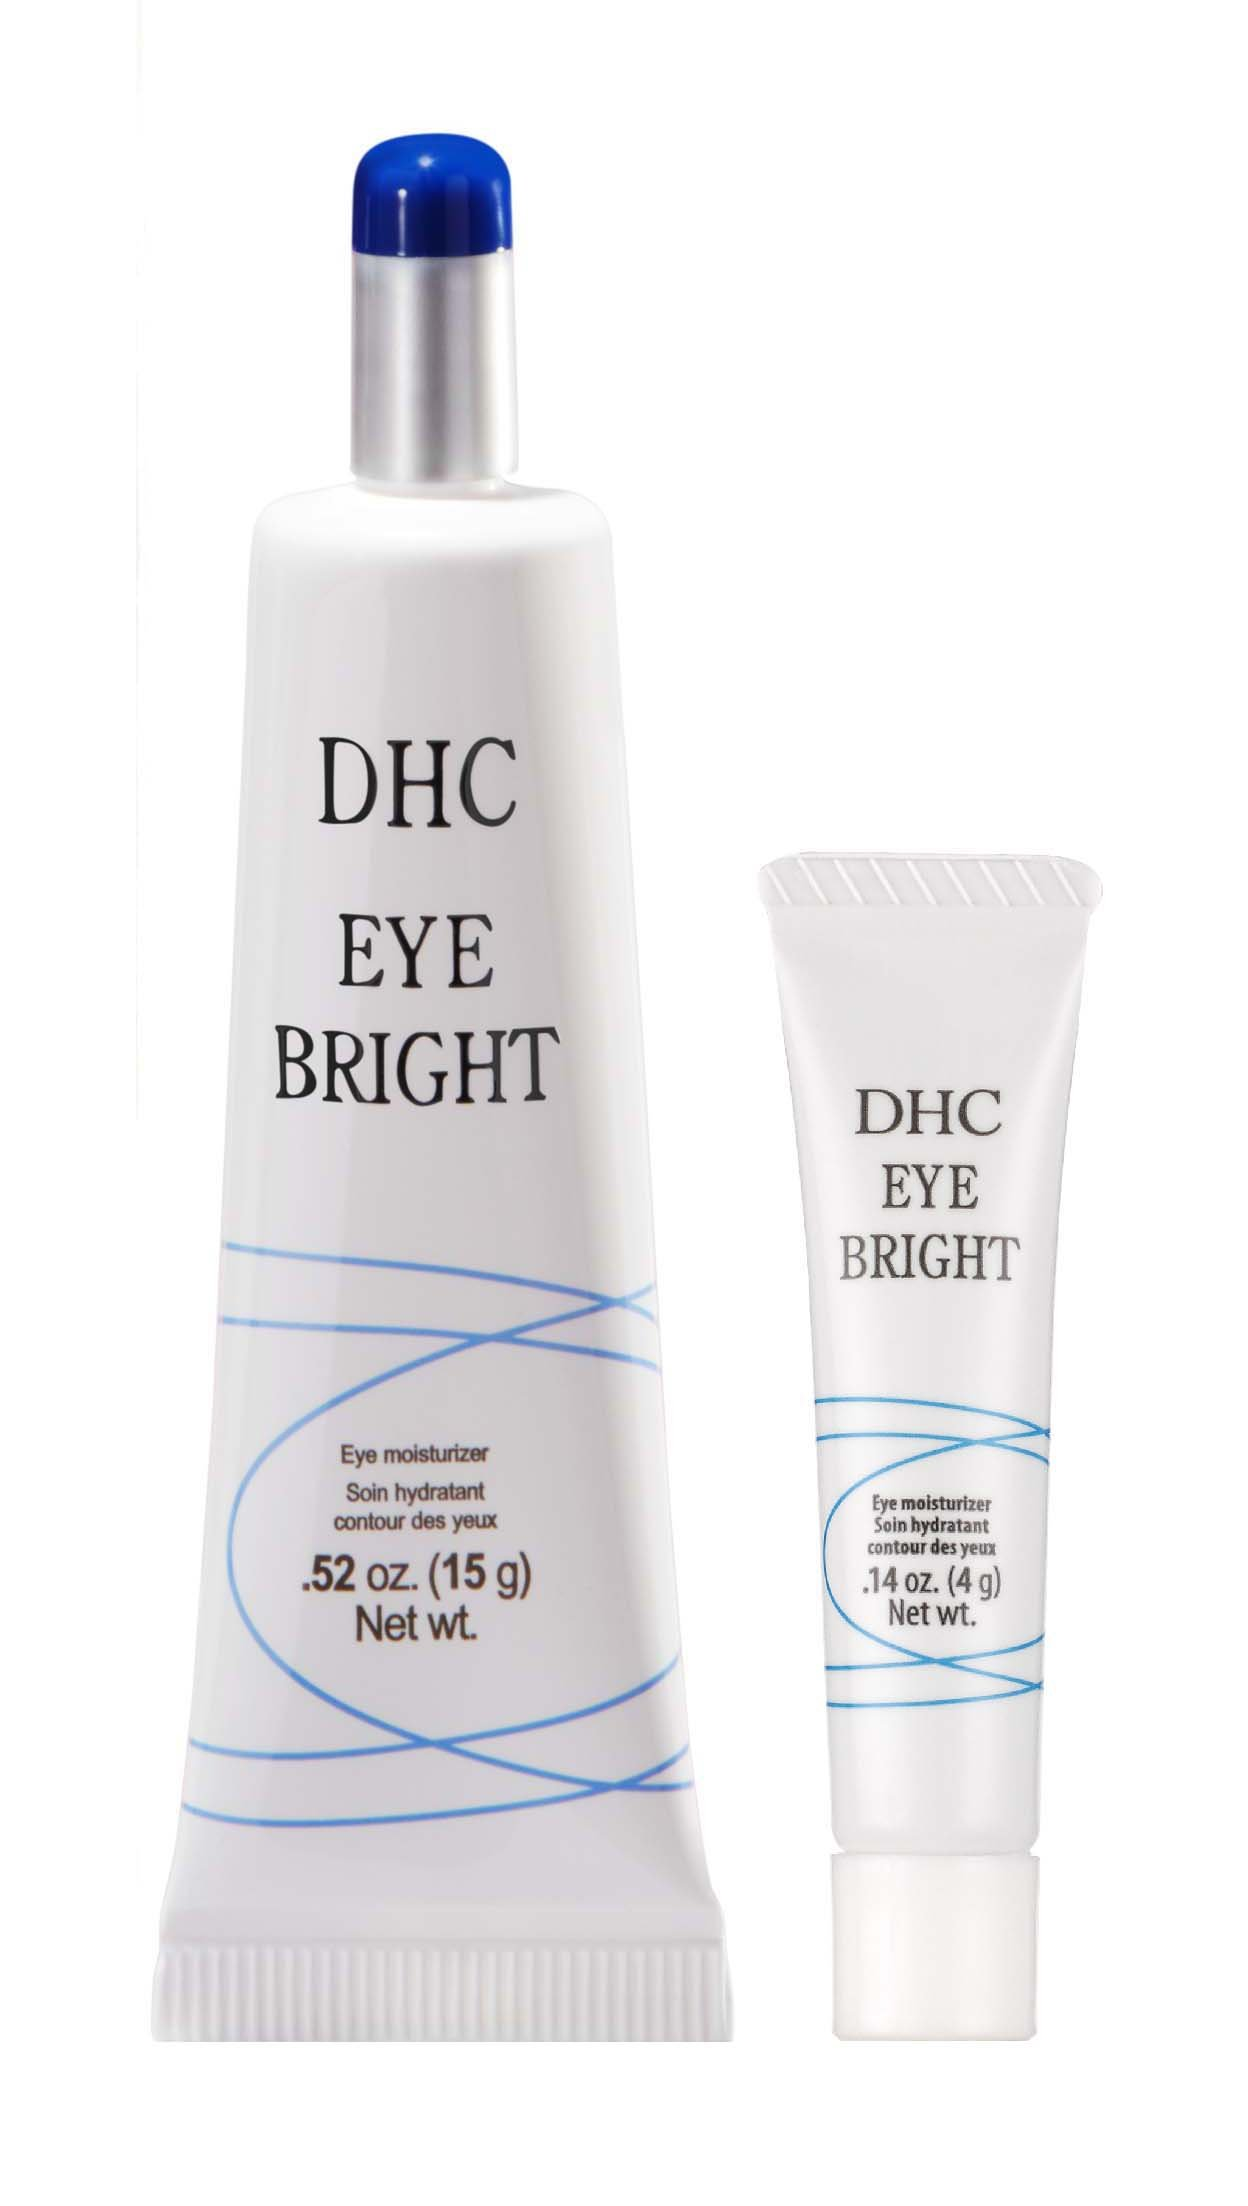 DHC Eye Bright, 0.52 oz. Net wt. & Eye Bright Travel Size, 0.14 oz. Net wt. by DHC